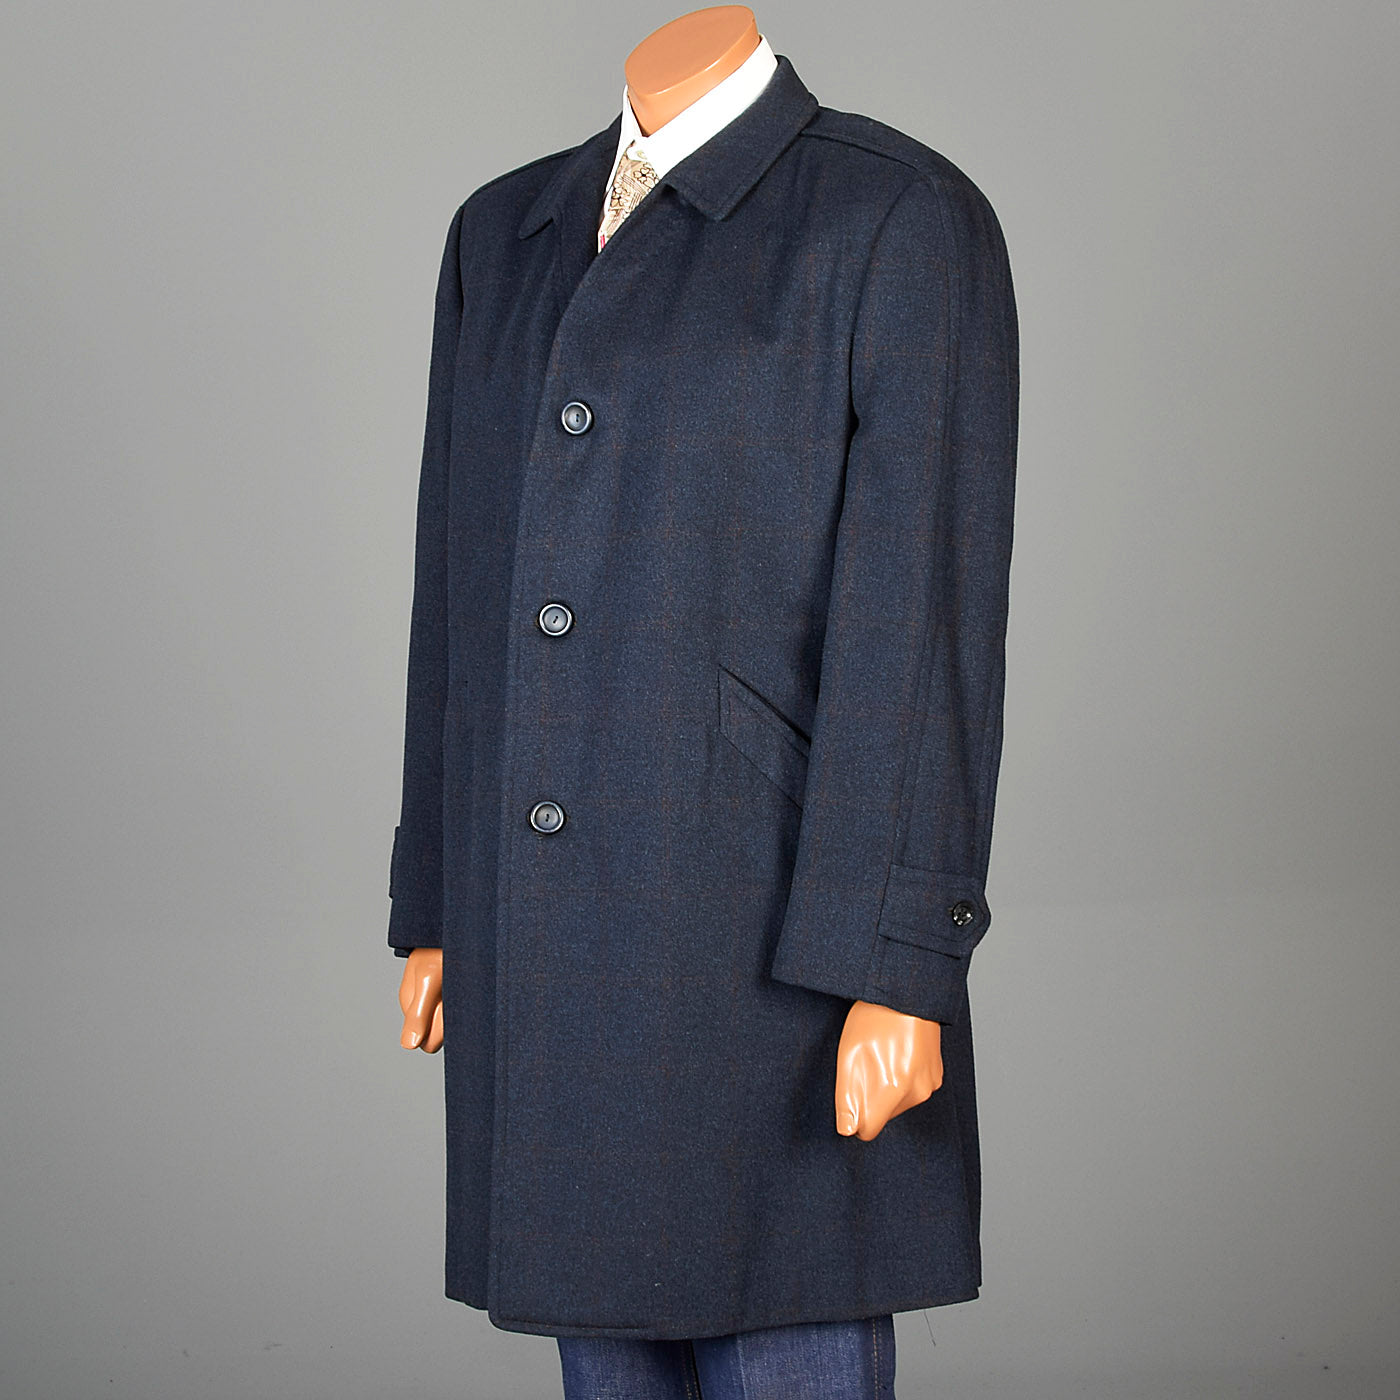 1960s Mens Navy Blue Car Coat